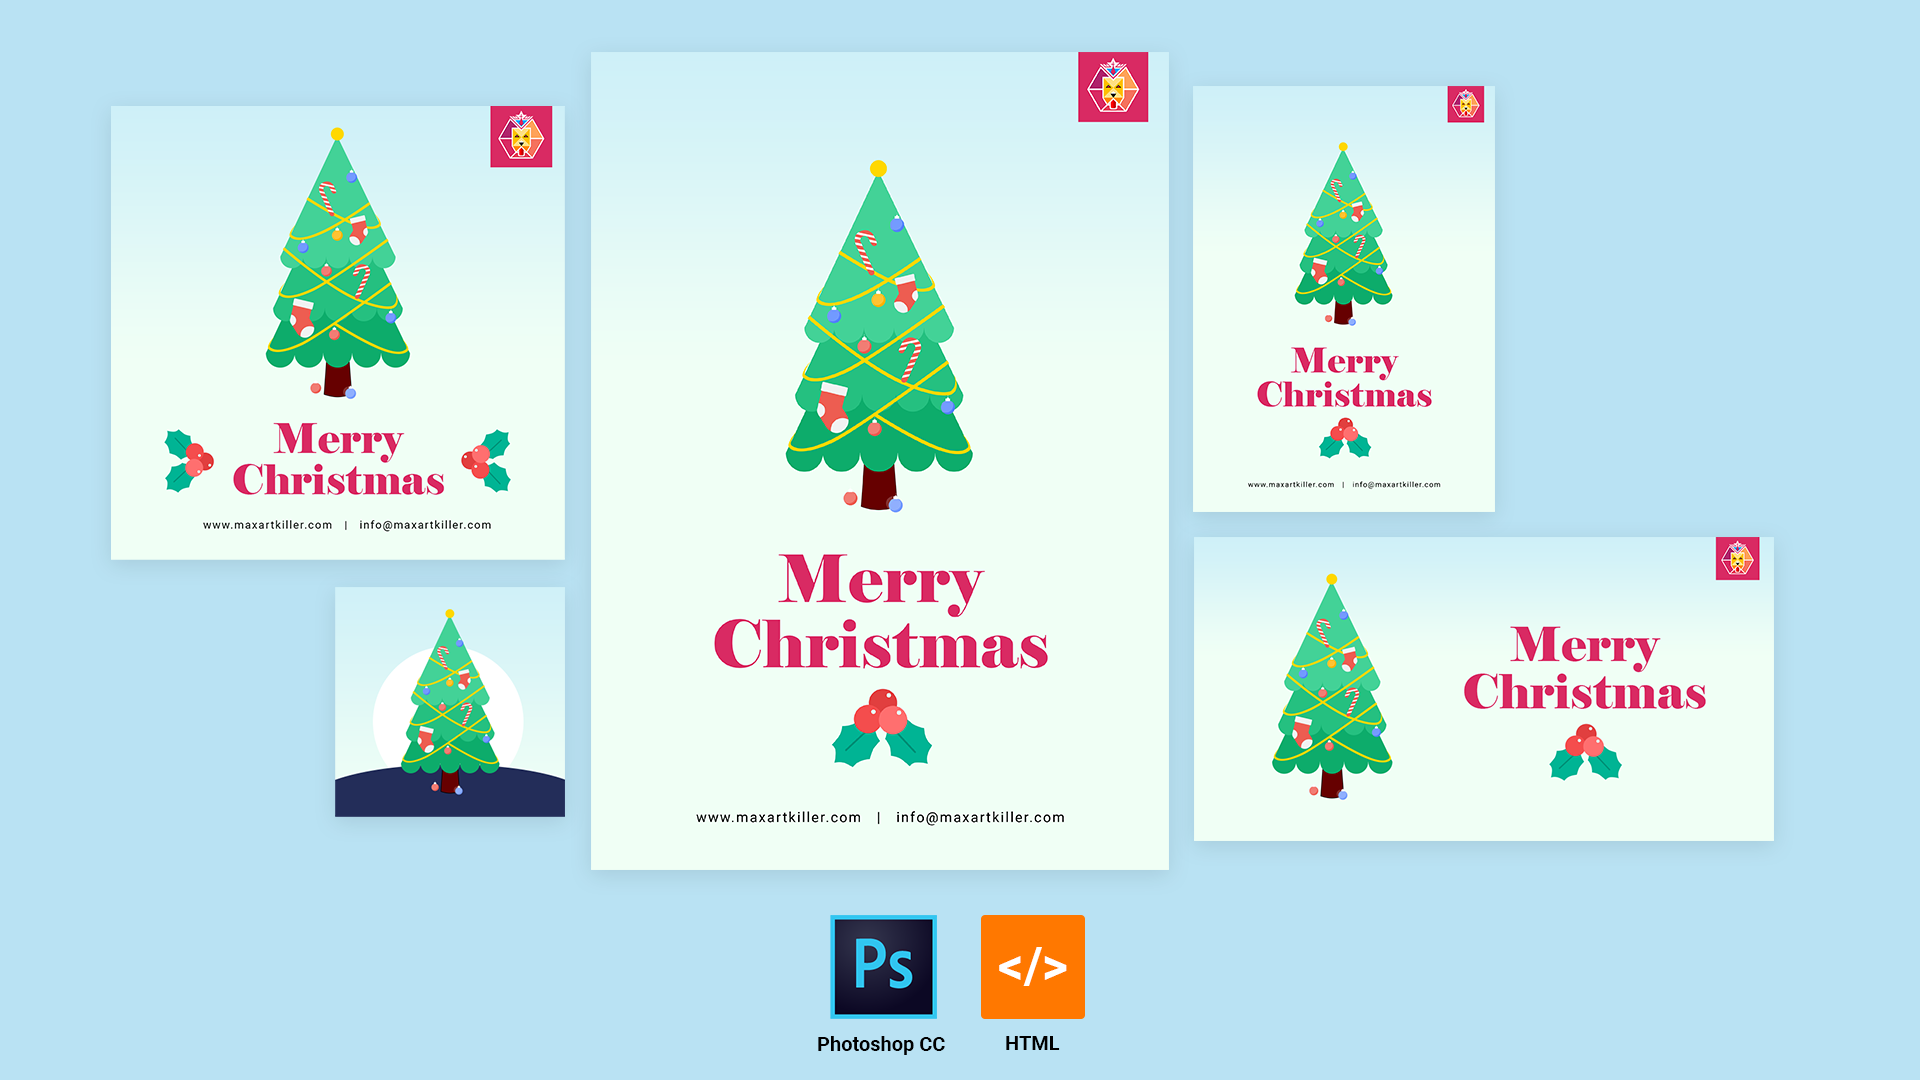 Merry Christmas Greeting Card 2019 | Maxartkiller